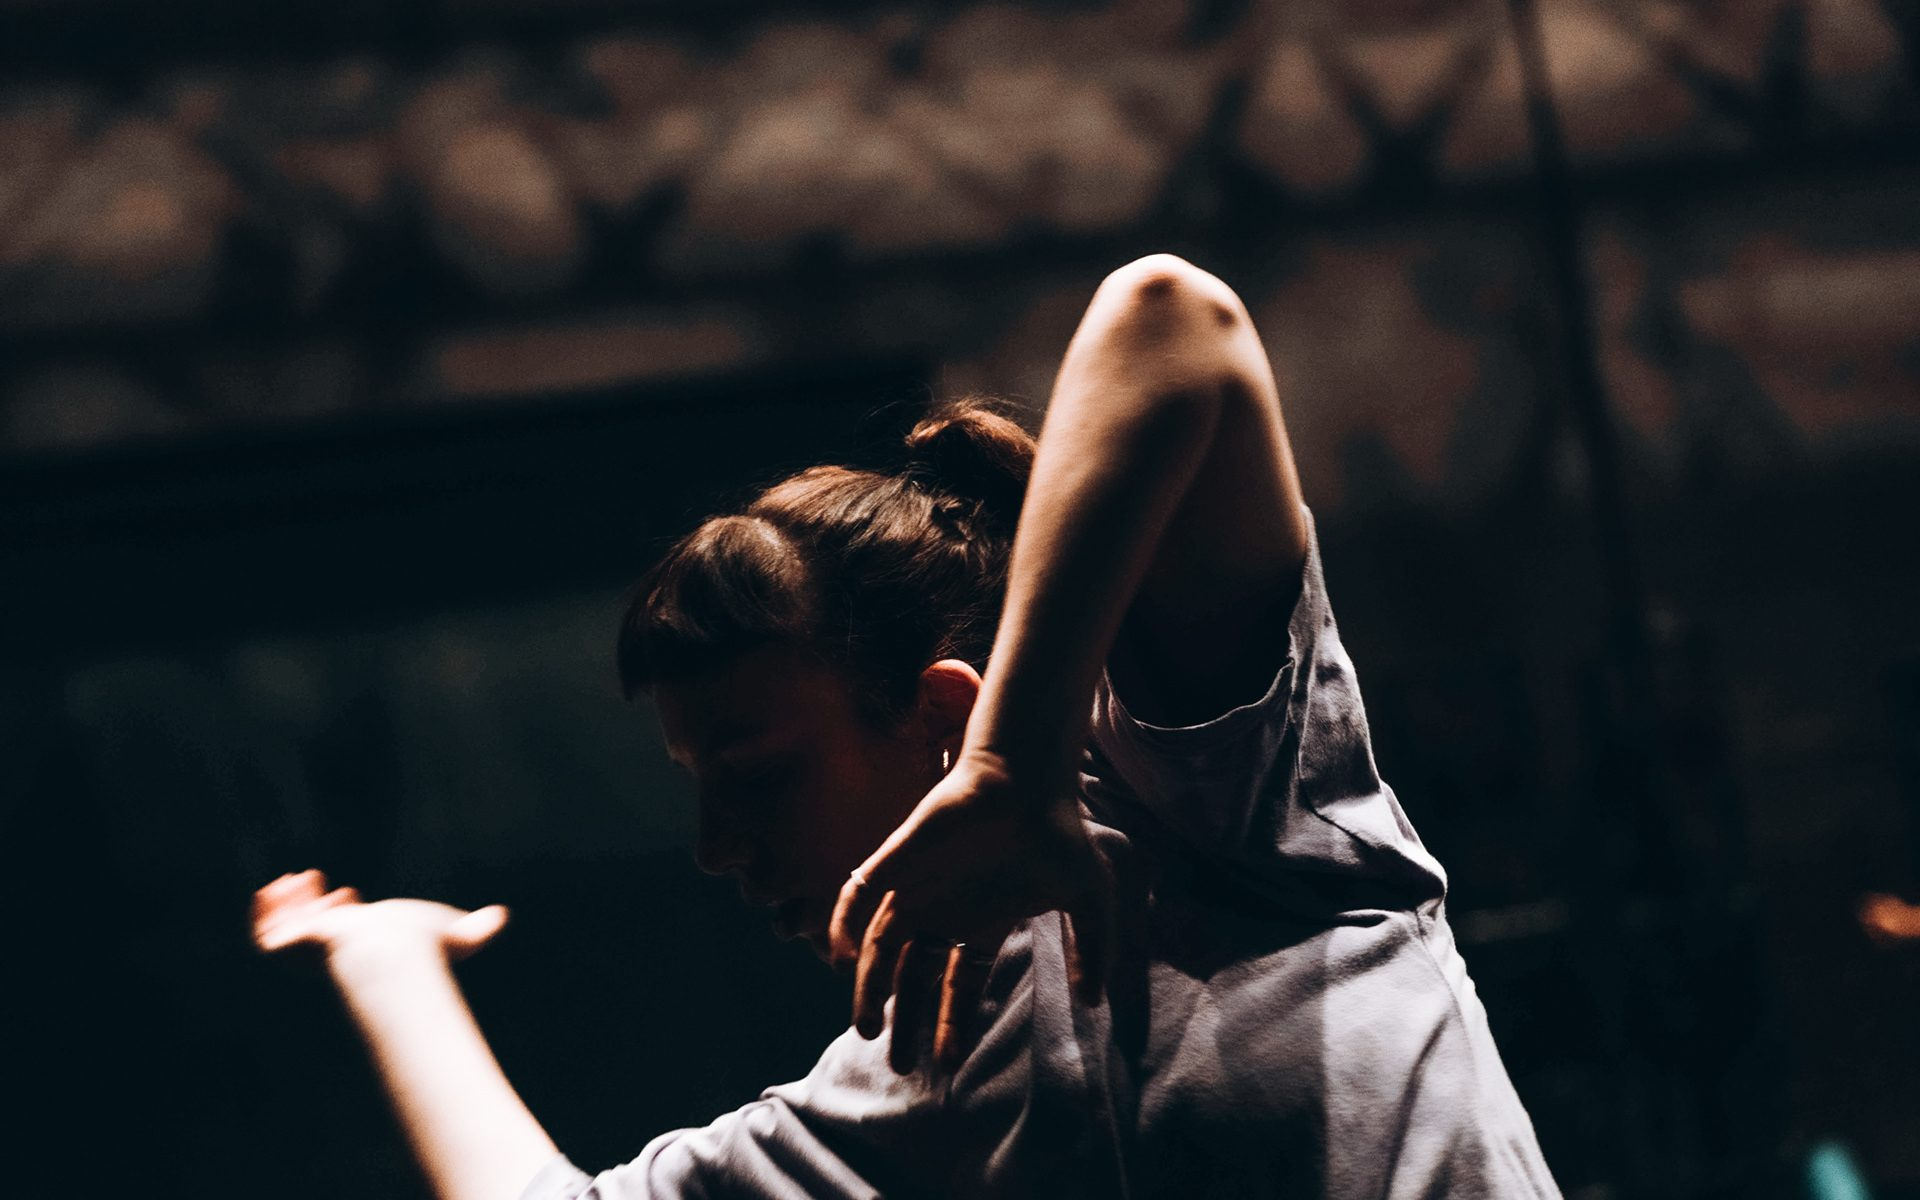 Alyssa Lisle dancing. Her face is in the dark and her arms are bent, one next to her head and one stretching out.